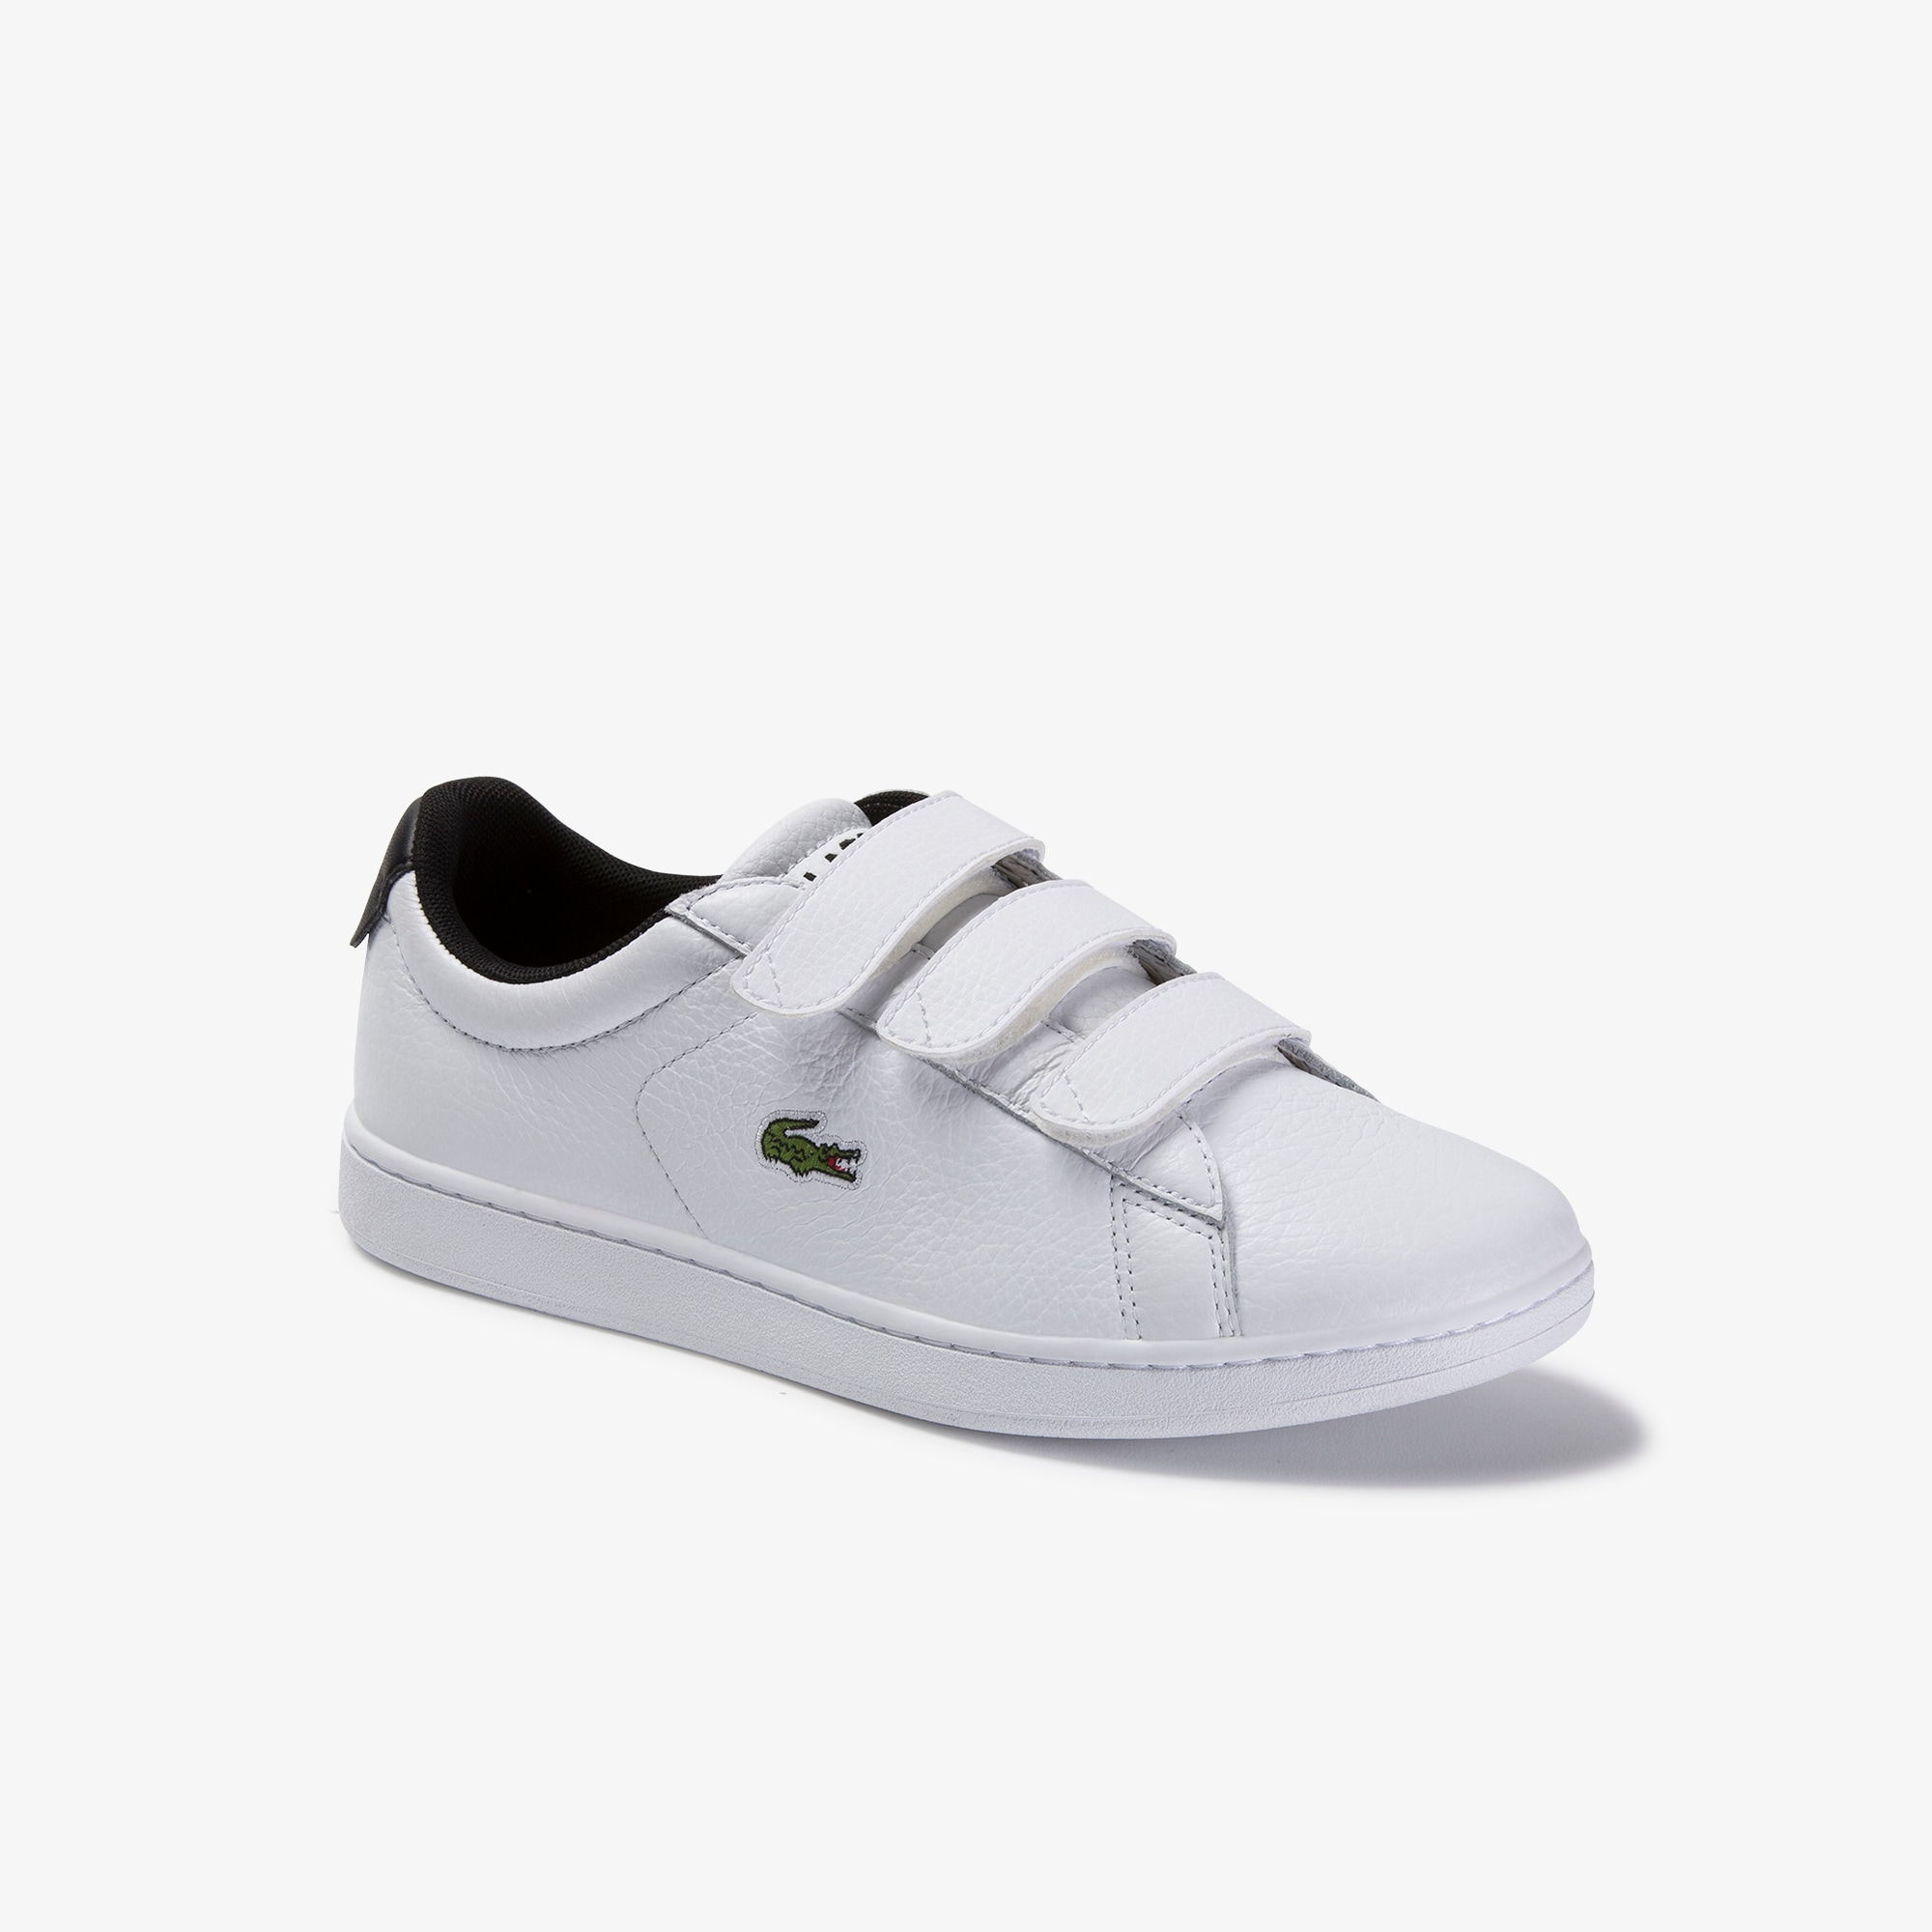 Women's Carnaby Evo Strap Leather and Synthetic Trainers